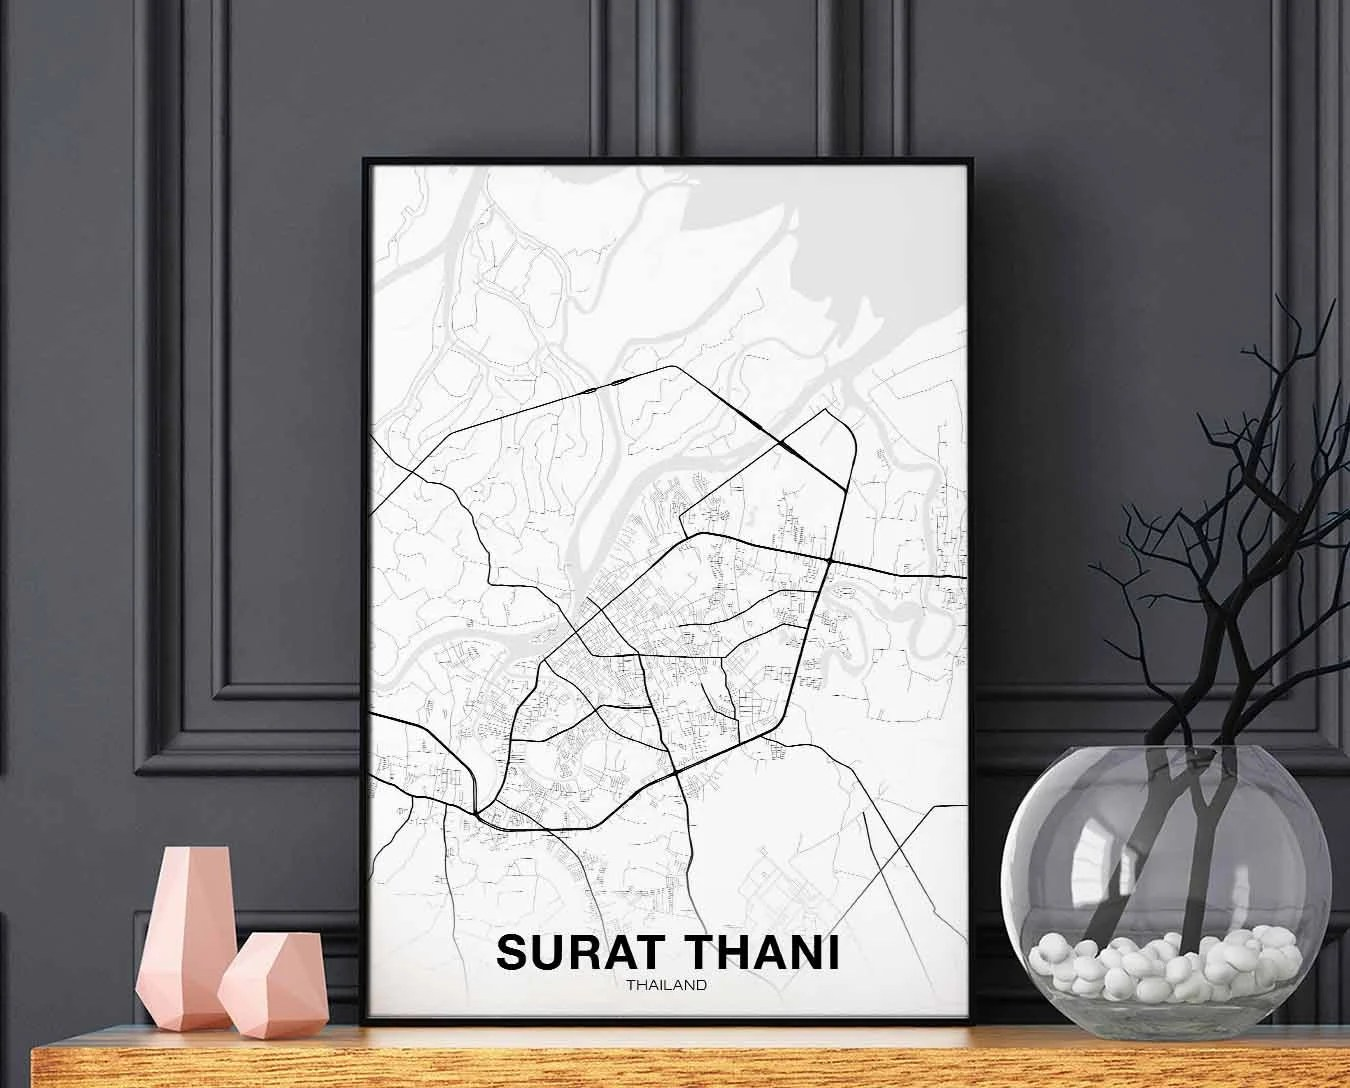 Arte Cucine Gdynia Surat Thani Thailand Map Poster Black White Wall Decor Design Modern Motto Swiss Scandinavian Minimal Nordic Housewarming Travel Bedroom